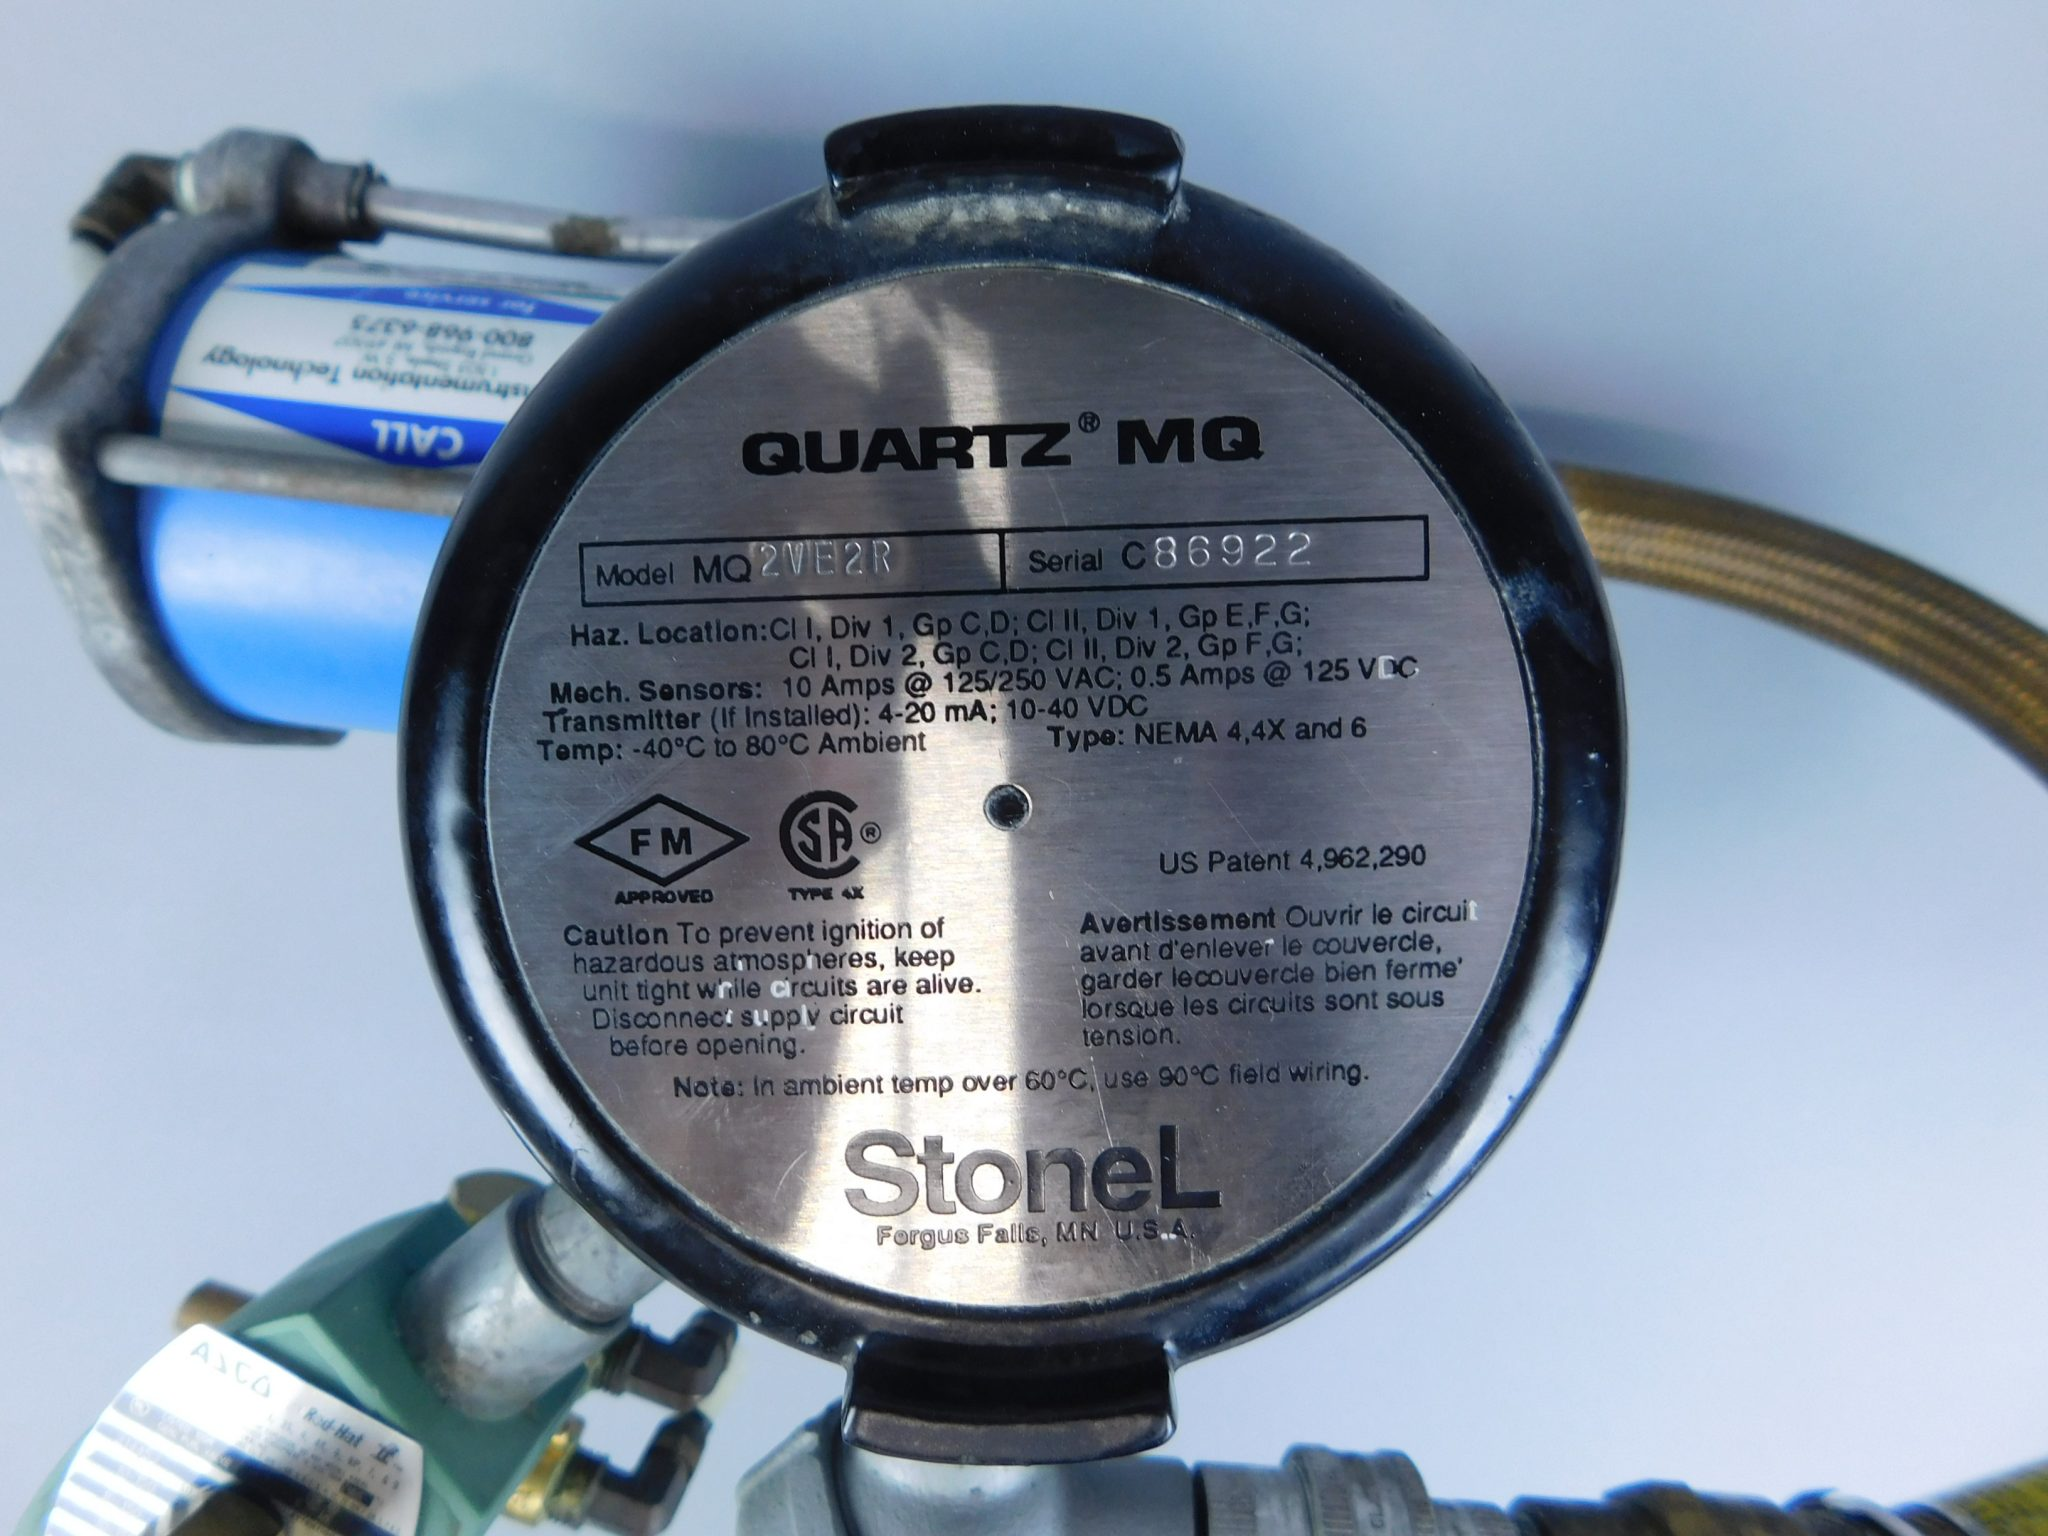 StoneL Quartz MQ 2VE2R Explosionproof Valve Monitoring System with  Jamesbury ST50E Actuator Assembly